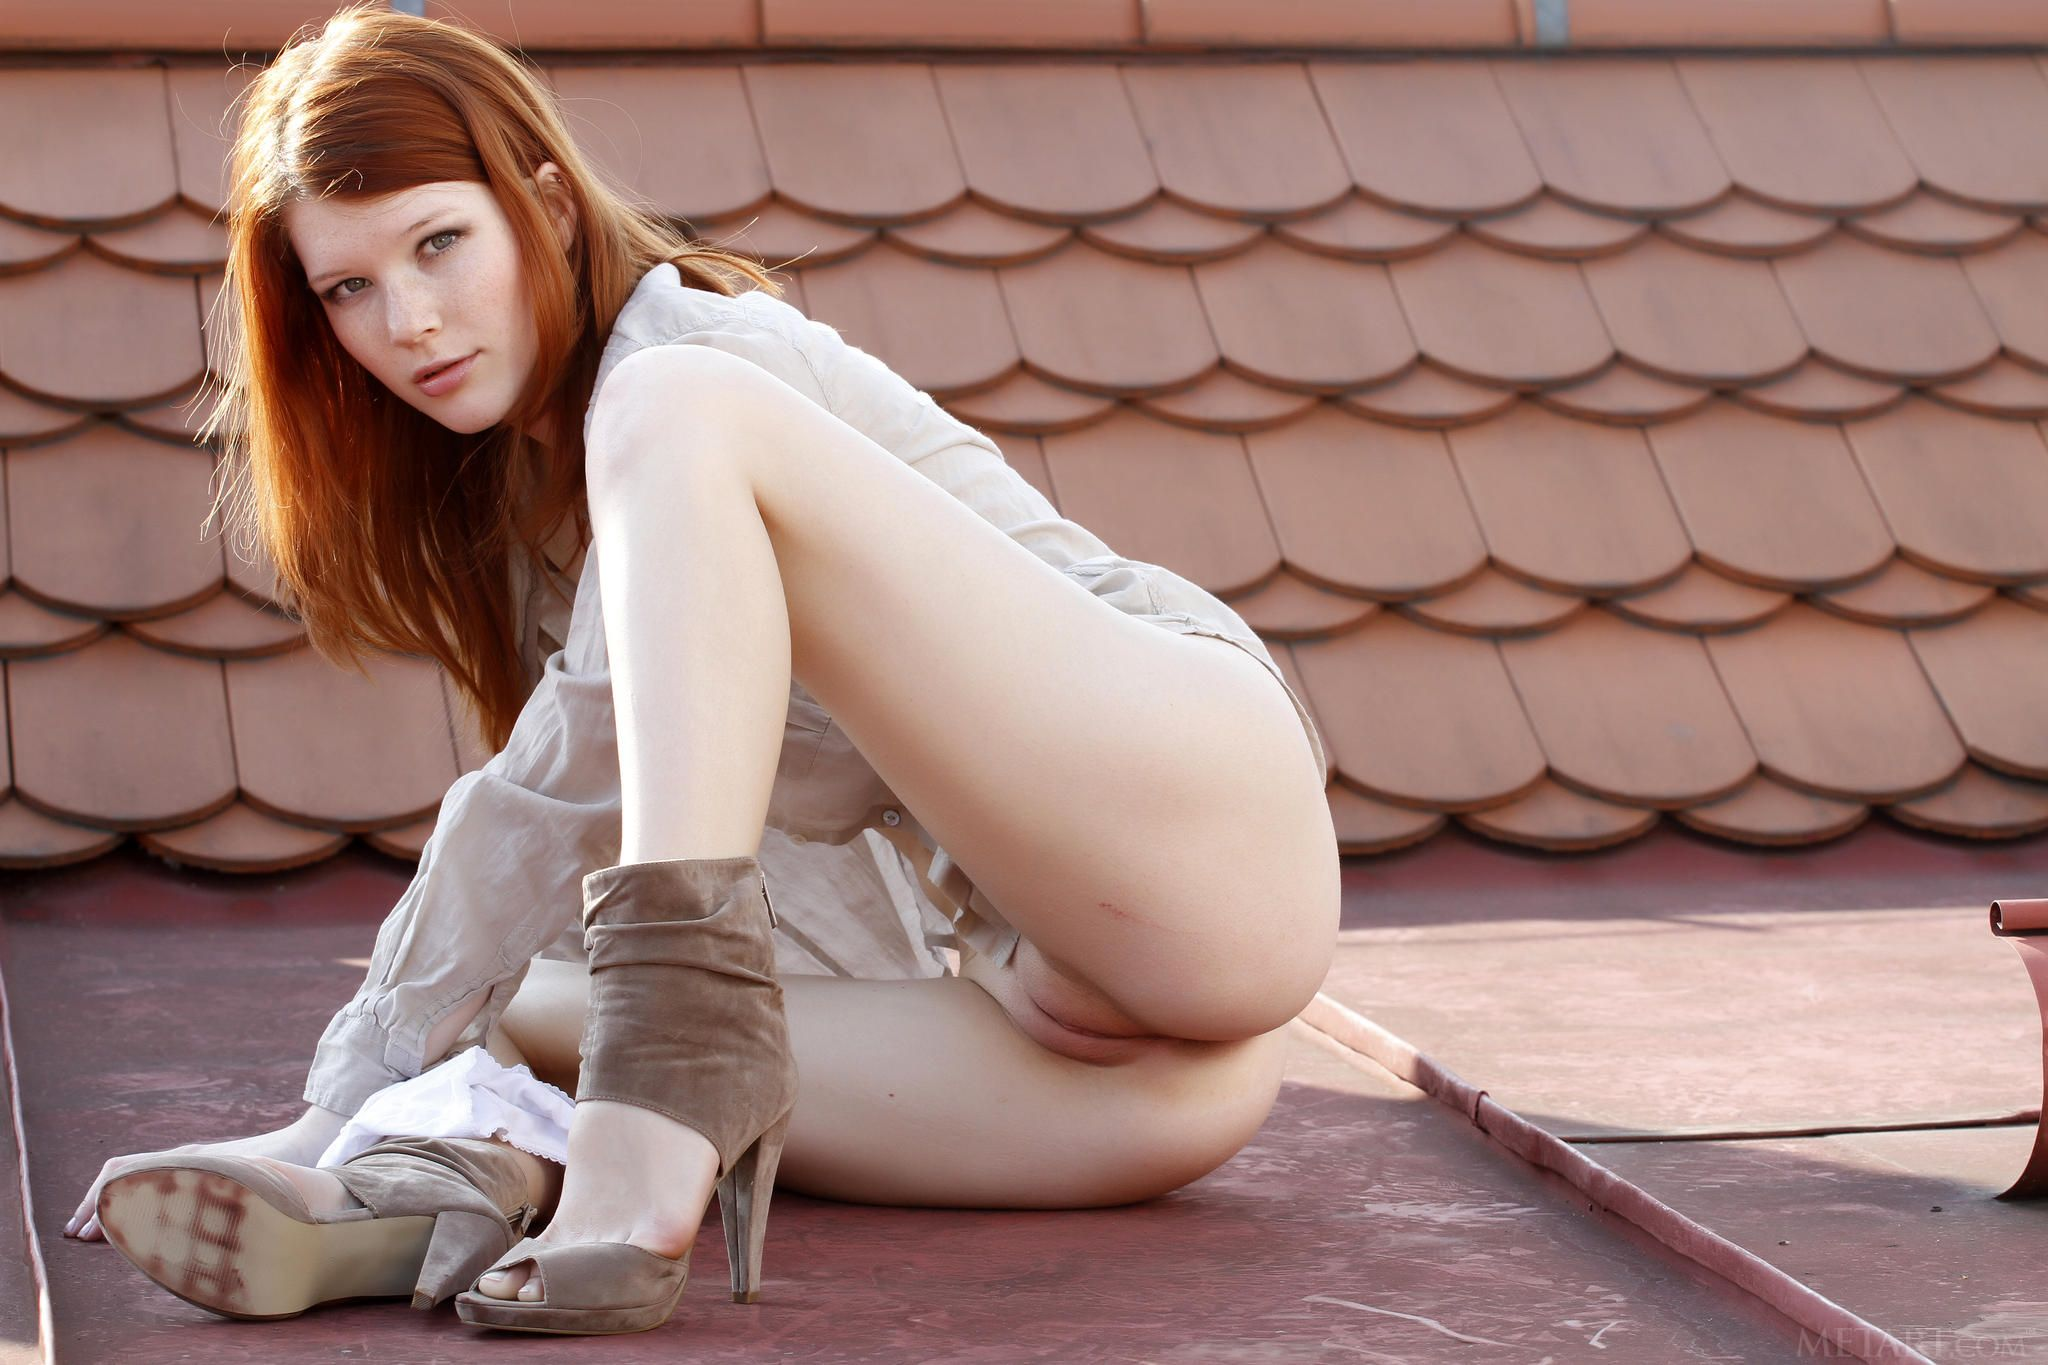 [Redhead Amateurs] On the roof